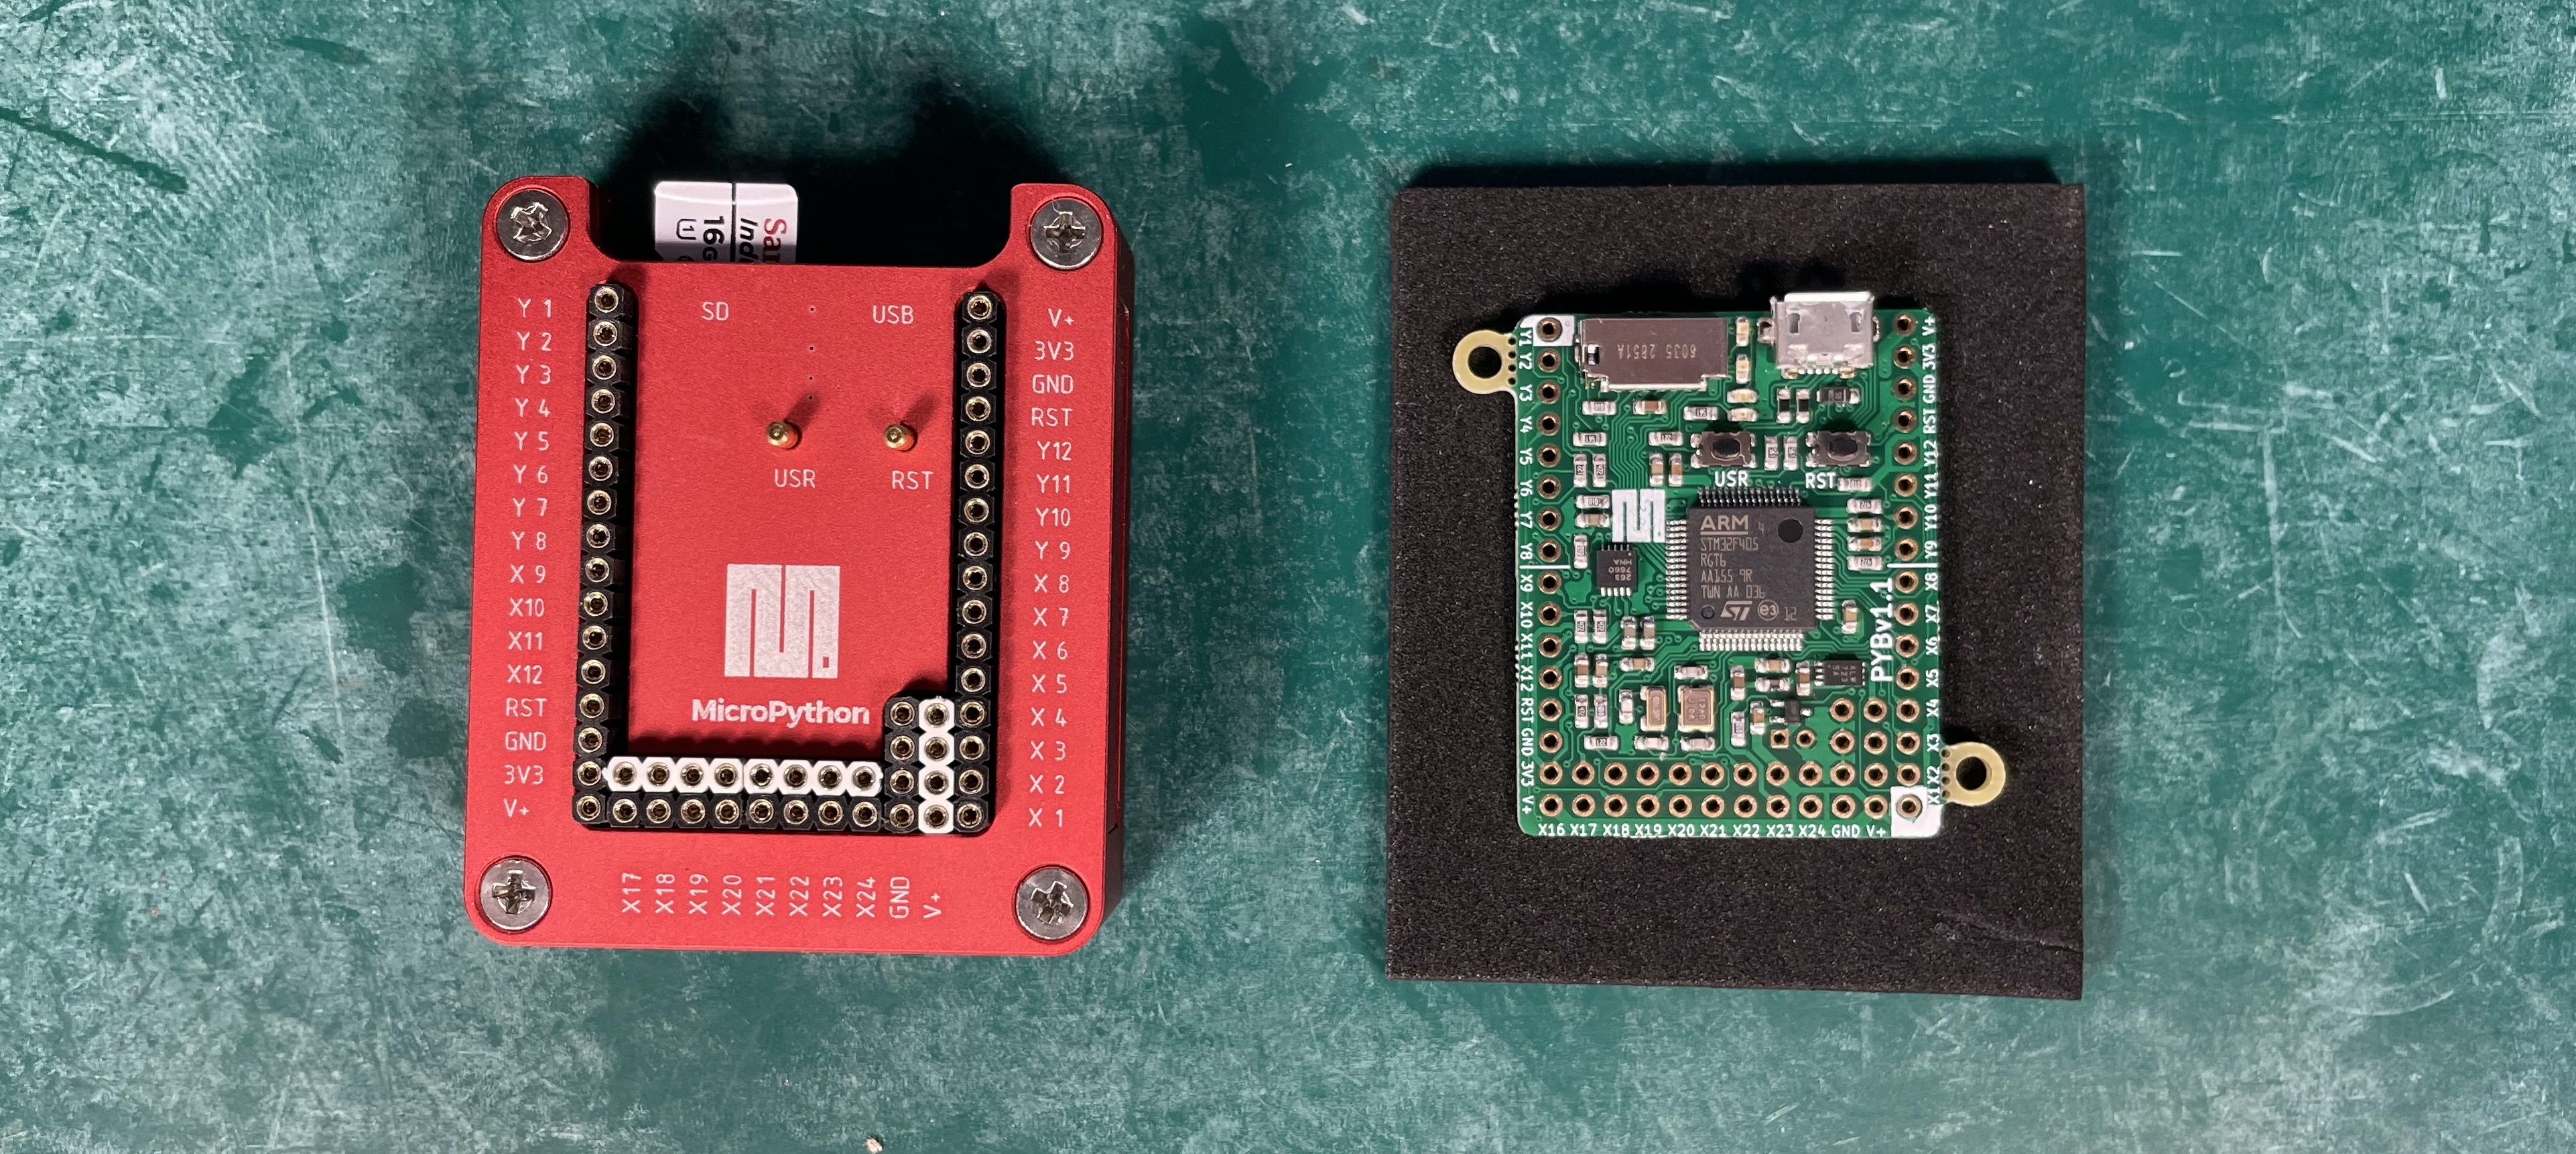 pyboard-and-case